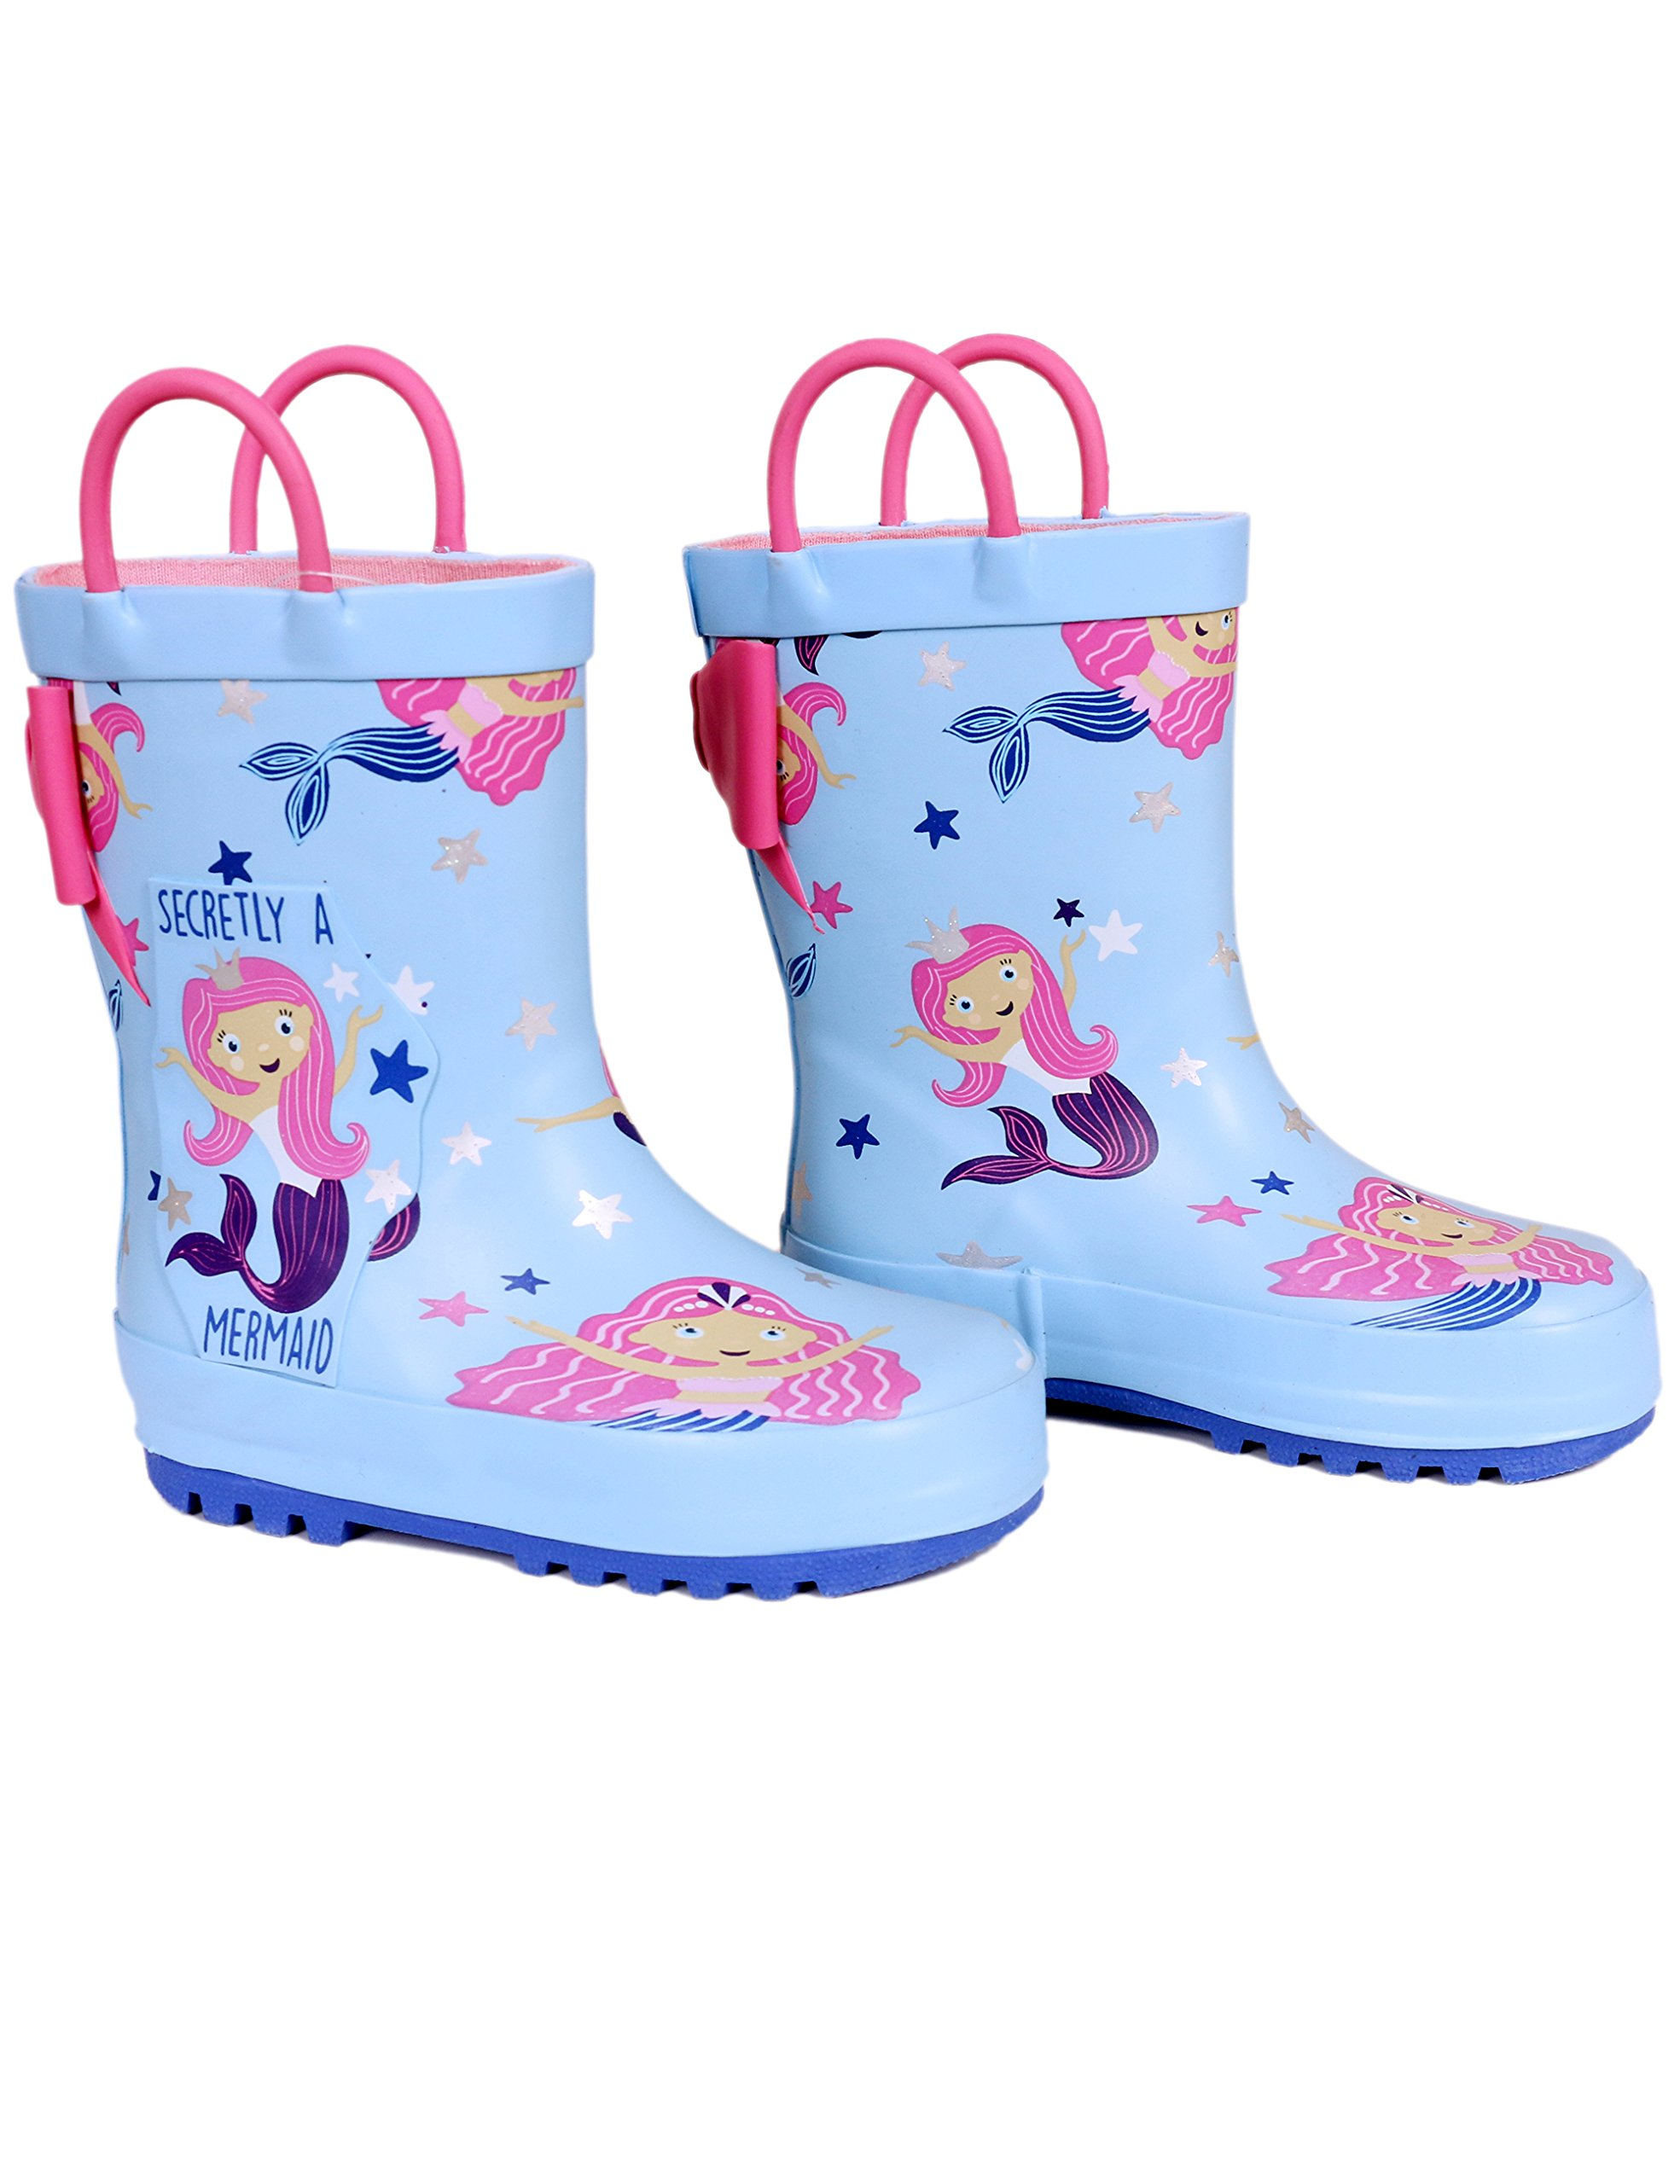 SHOFORT Girls' Rubber Rain Boots with Handles for Little Kids, Size 13